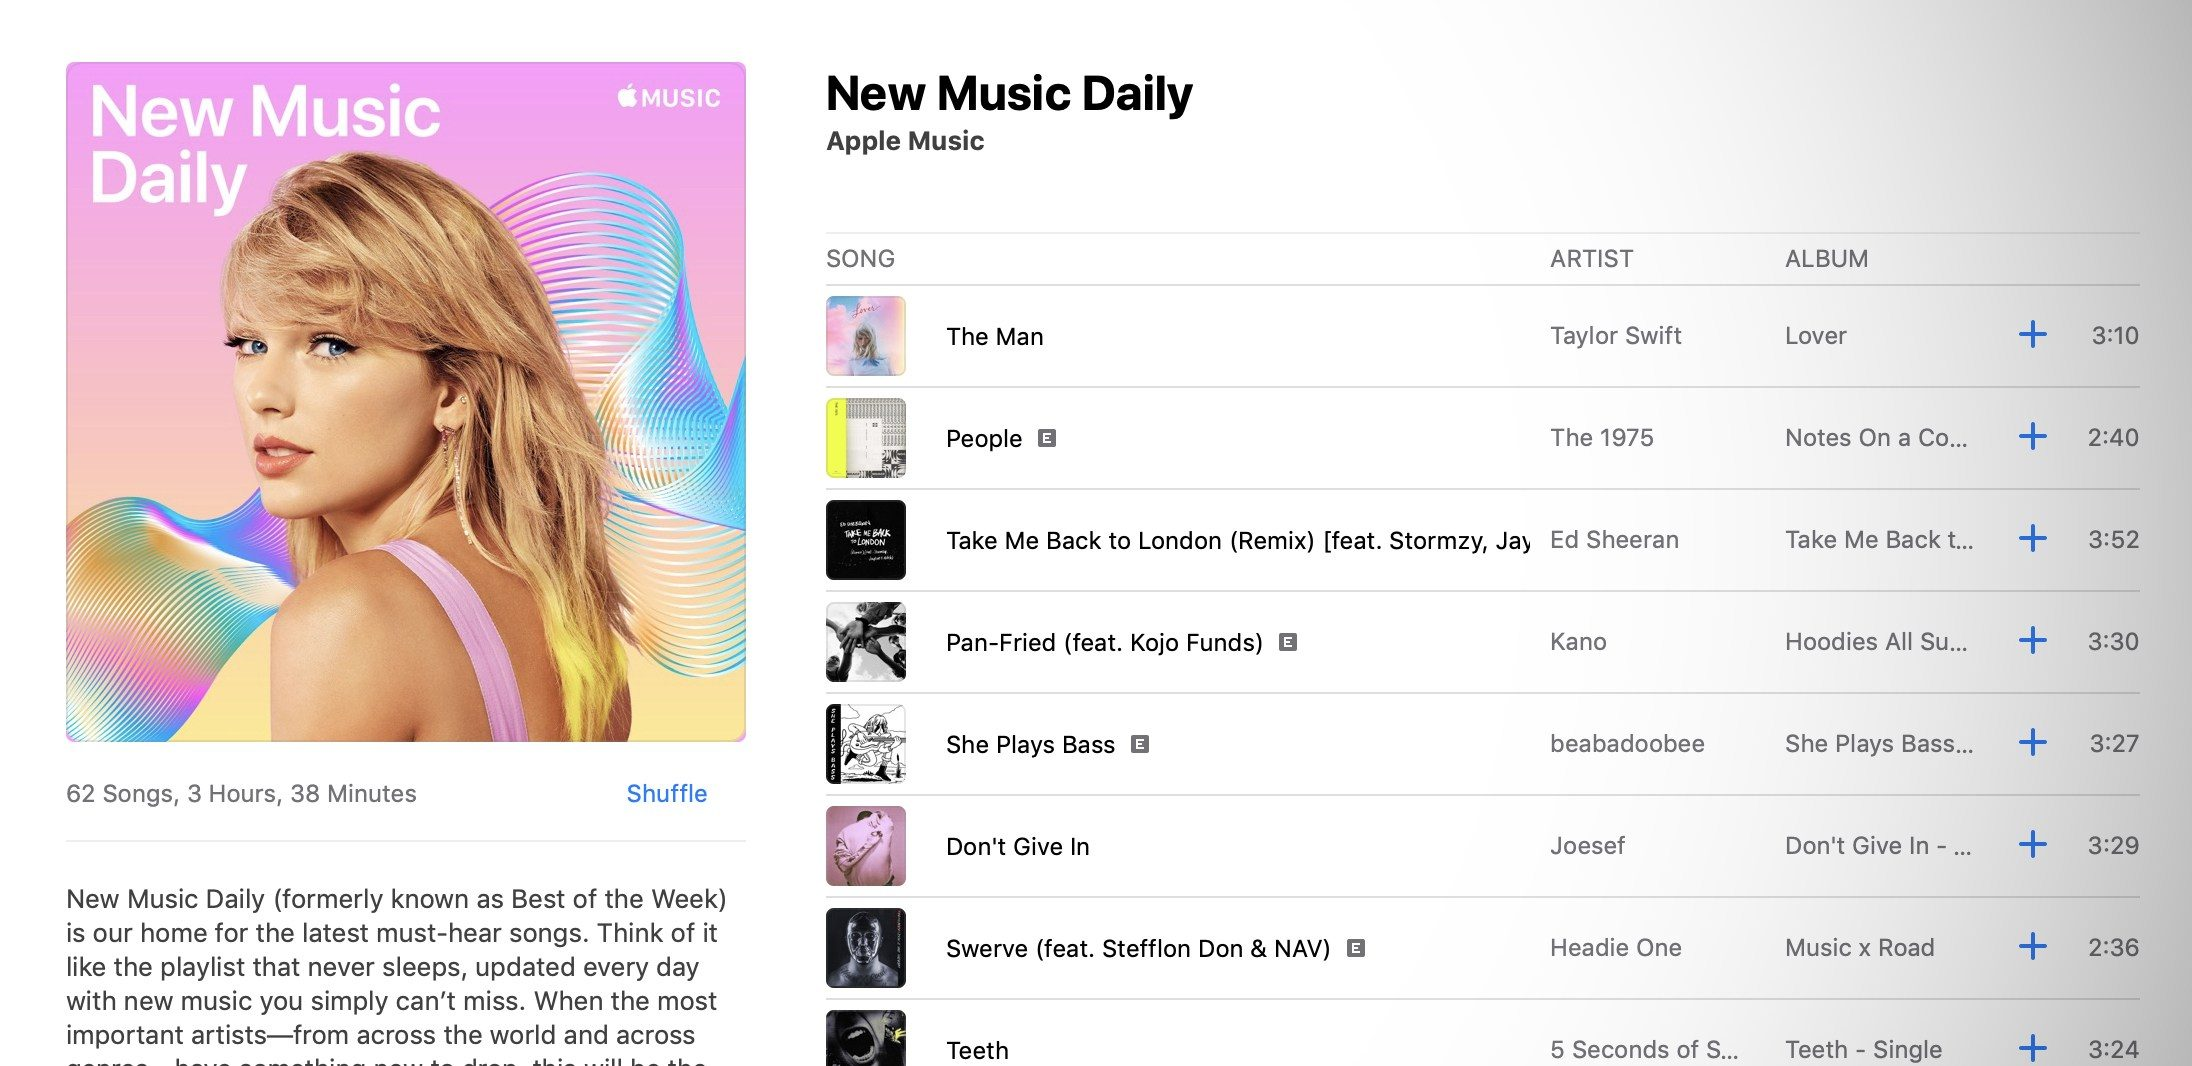 Apple Music launches 'New Music Daily' playlist